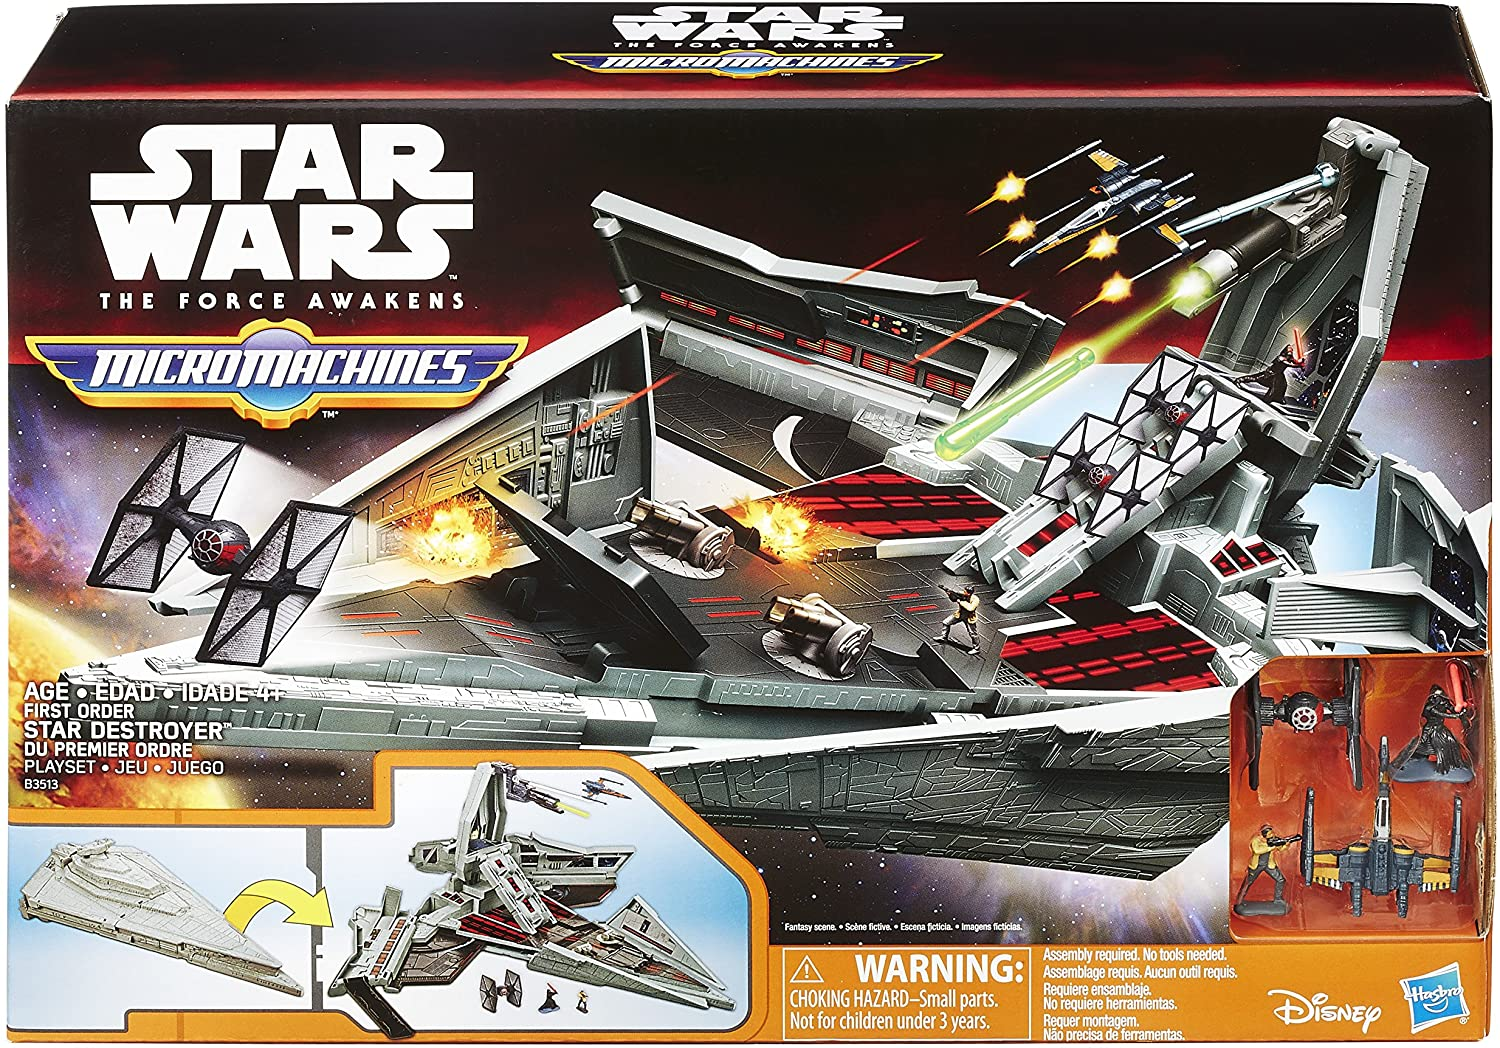 Star Wars Micro Machines First order The Force Awakens star destroyer